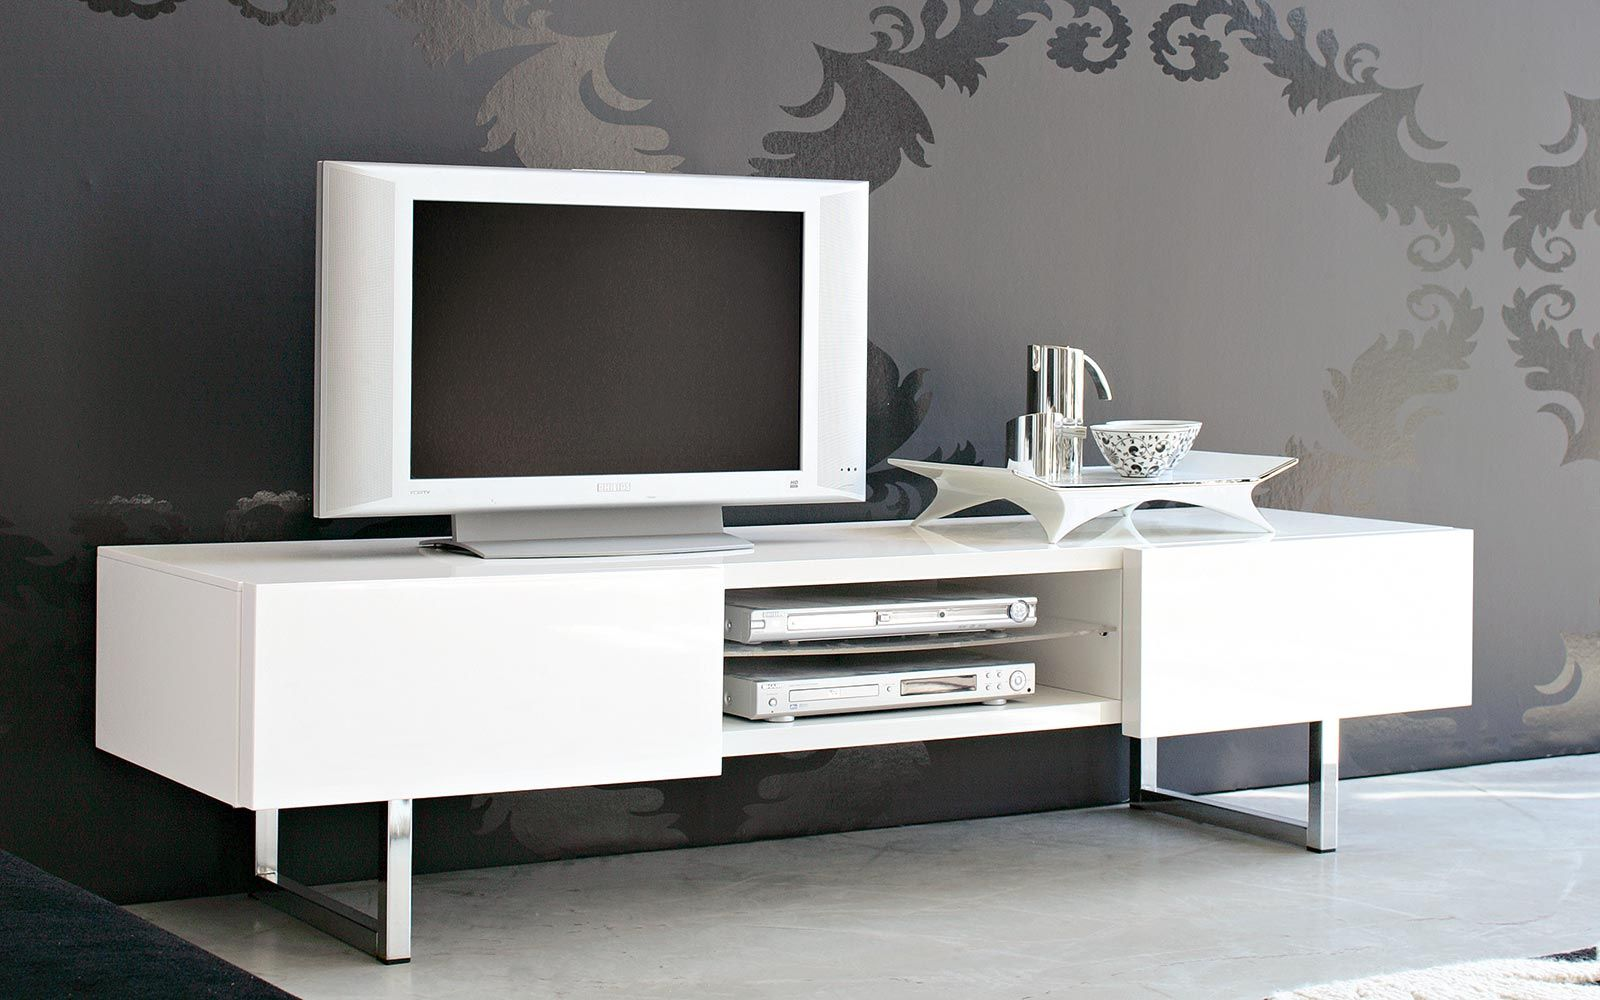 Calligaris Porta Tv.Seattle Tv Bench In Wood And Metal Calligaris Cs 6004 6